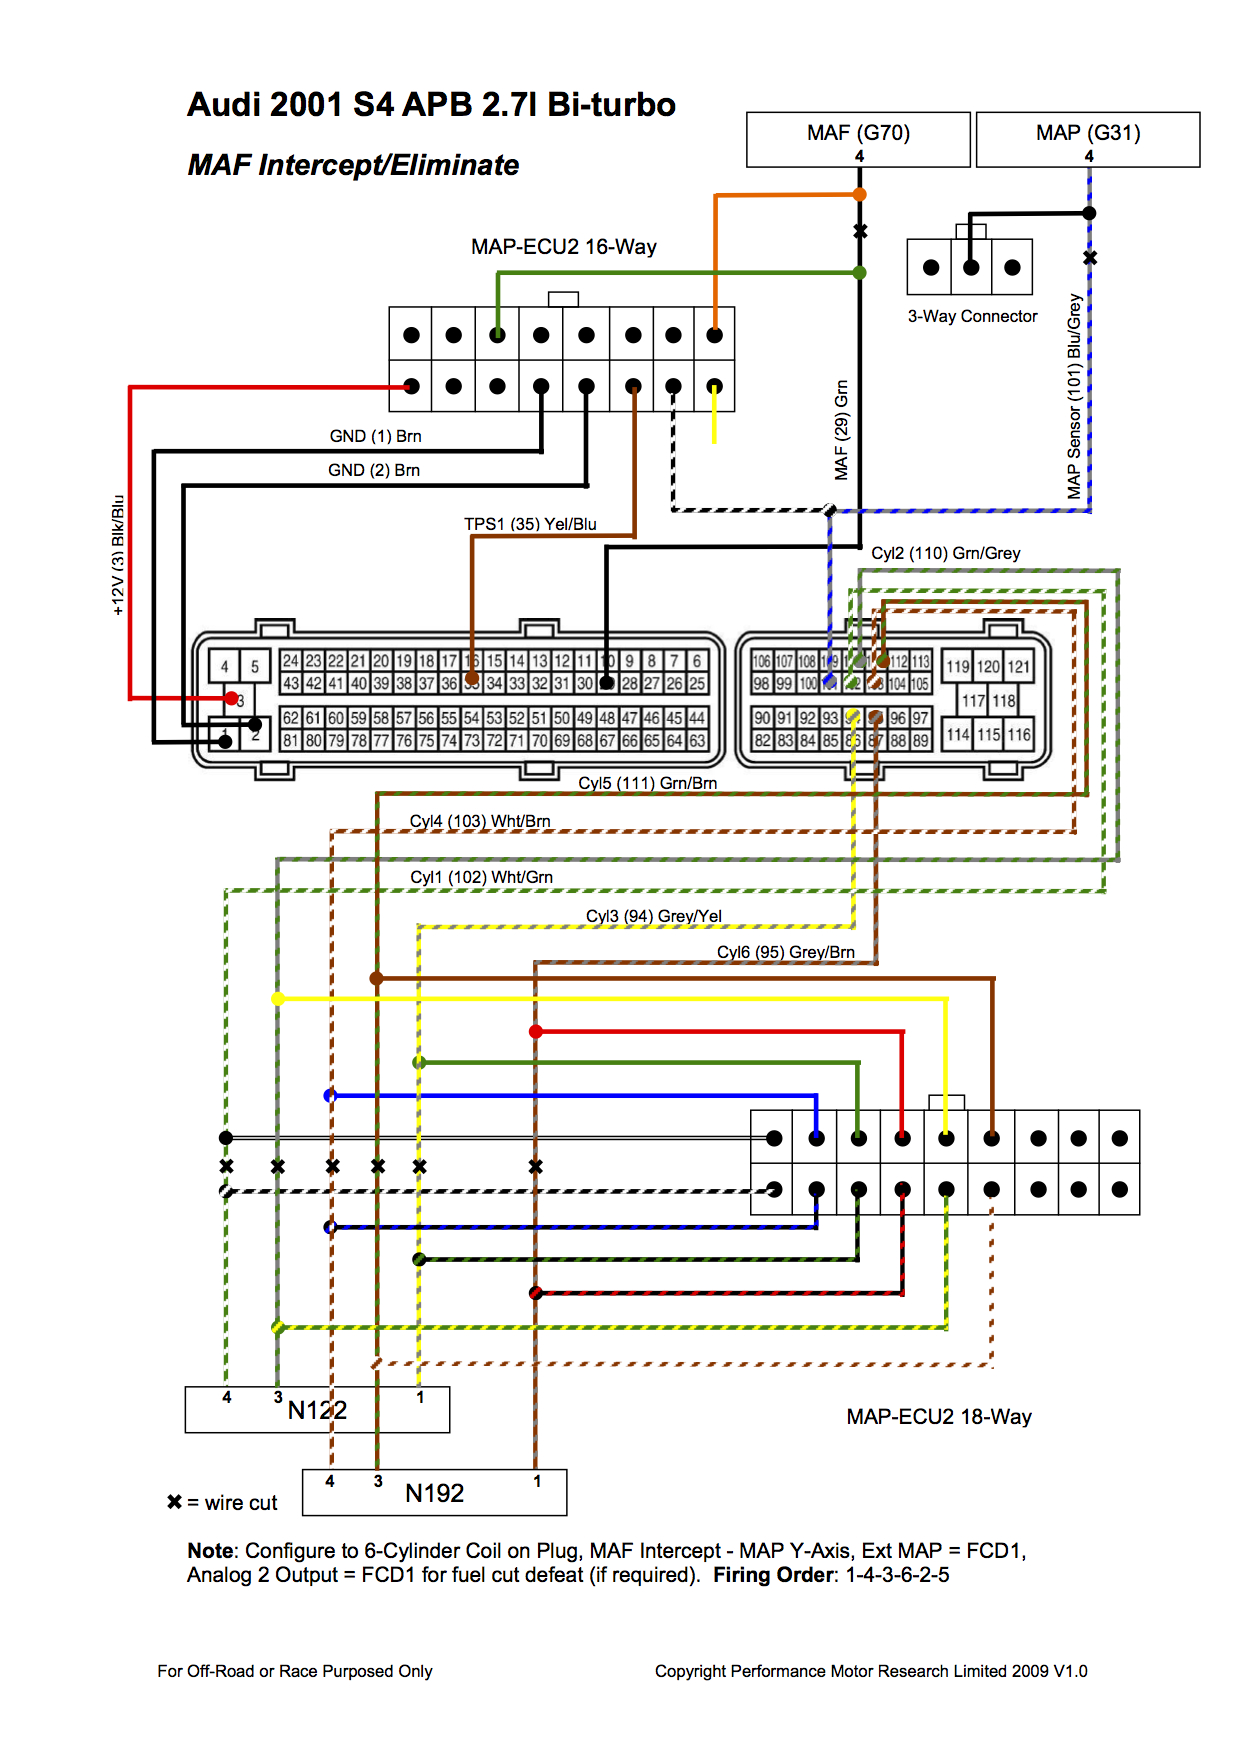 Audi S4 20011 ecu wiring diagram paccar ecu wiring diagram \u2022 wiring diagrams j Ford F-150 Wiring Diagram at soozxer.org